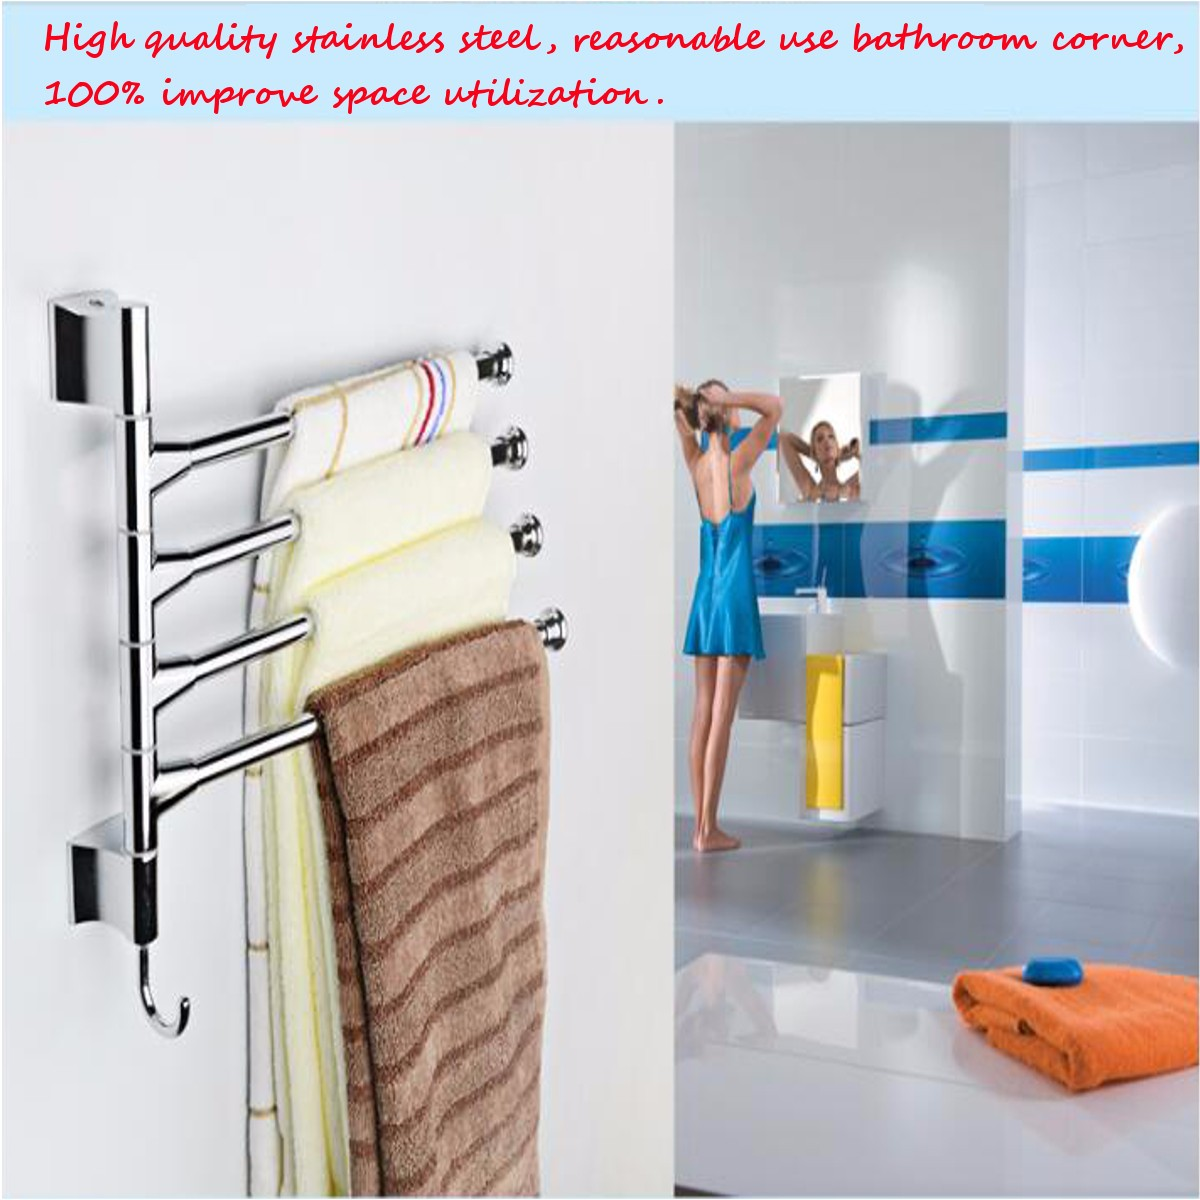 Bathroom Kitchen Wall Mounted Rotating Towel Rack Storage Hold